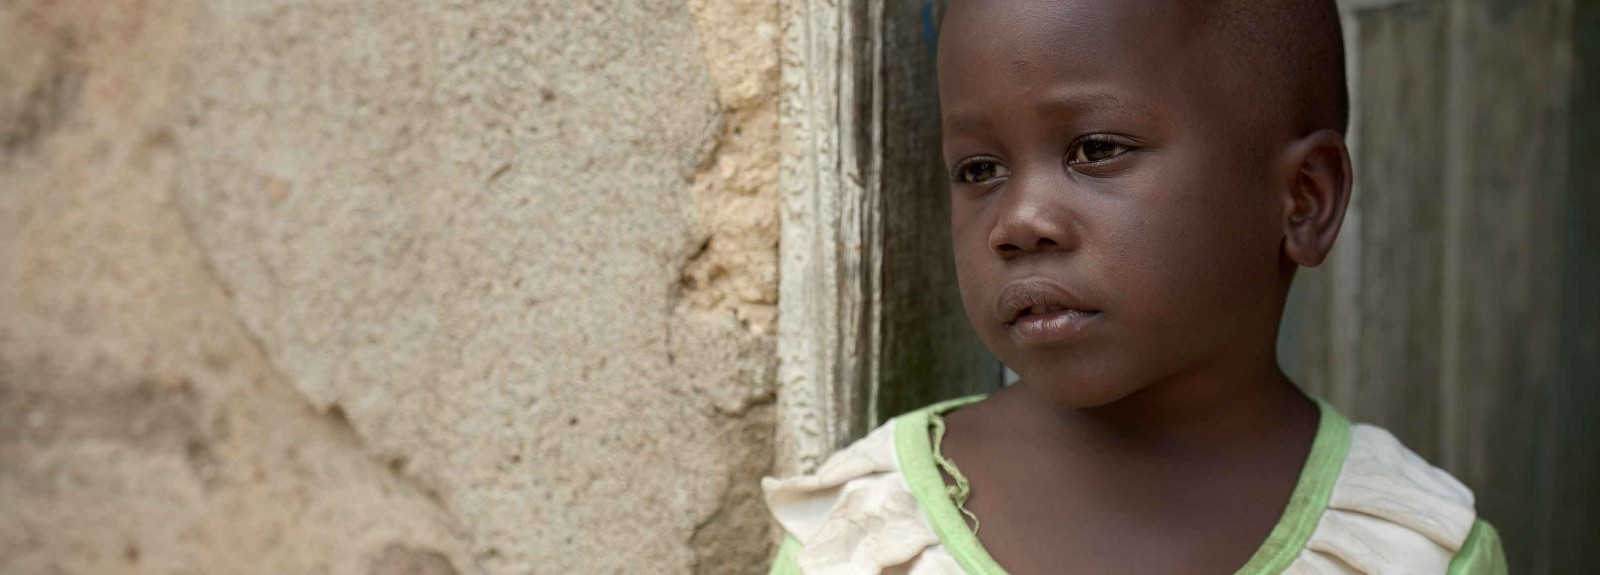 Christivie Mulonda is a 5-year-old survivor of Ebola in Beni, a city in eastern Democratic Republic of Congo that was hard hit by the outbreak that began in 2018. Innocent children like Christivie need your love now.